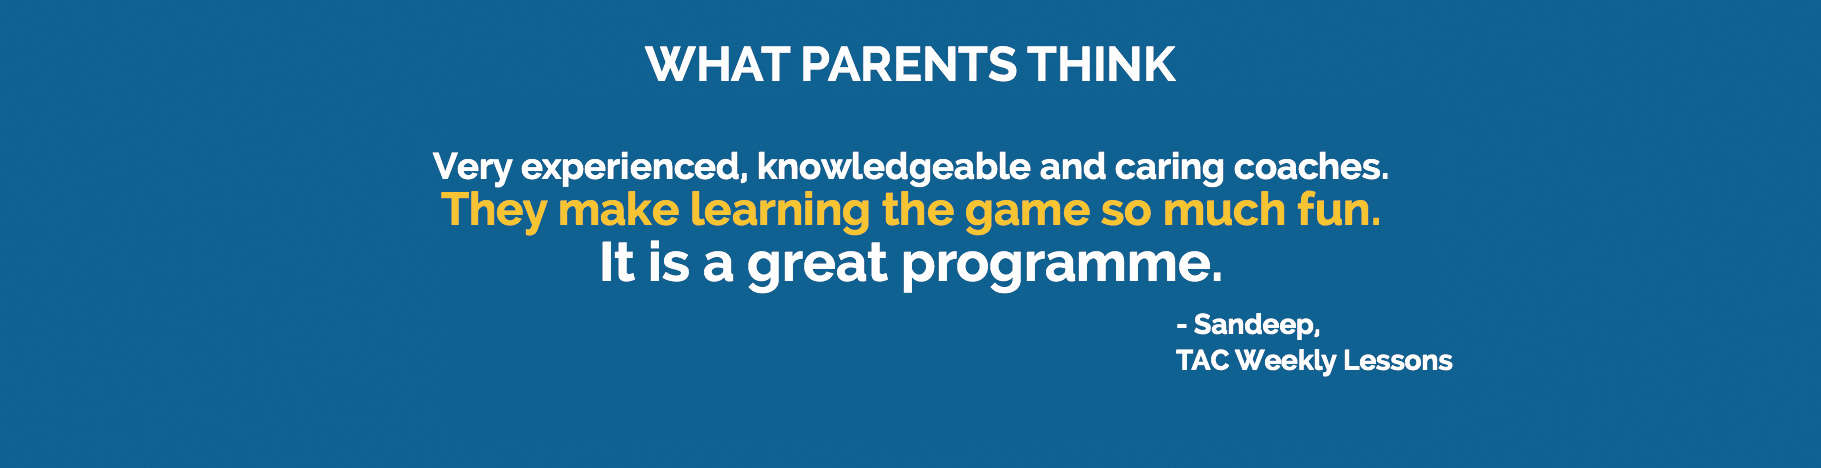 Testimonial: They make learning the game so much fun.